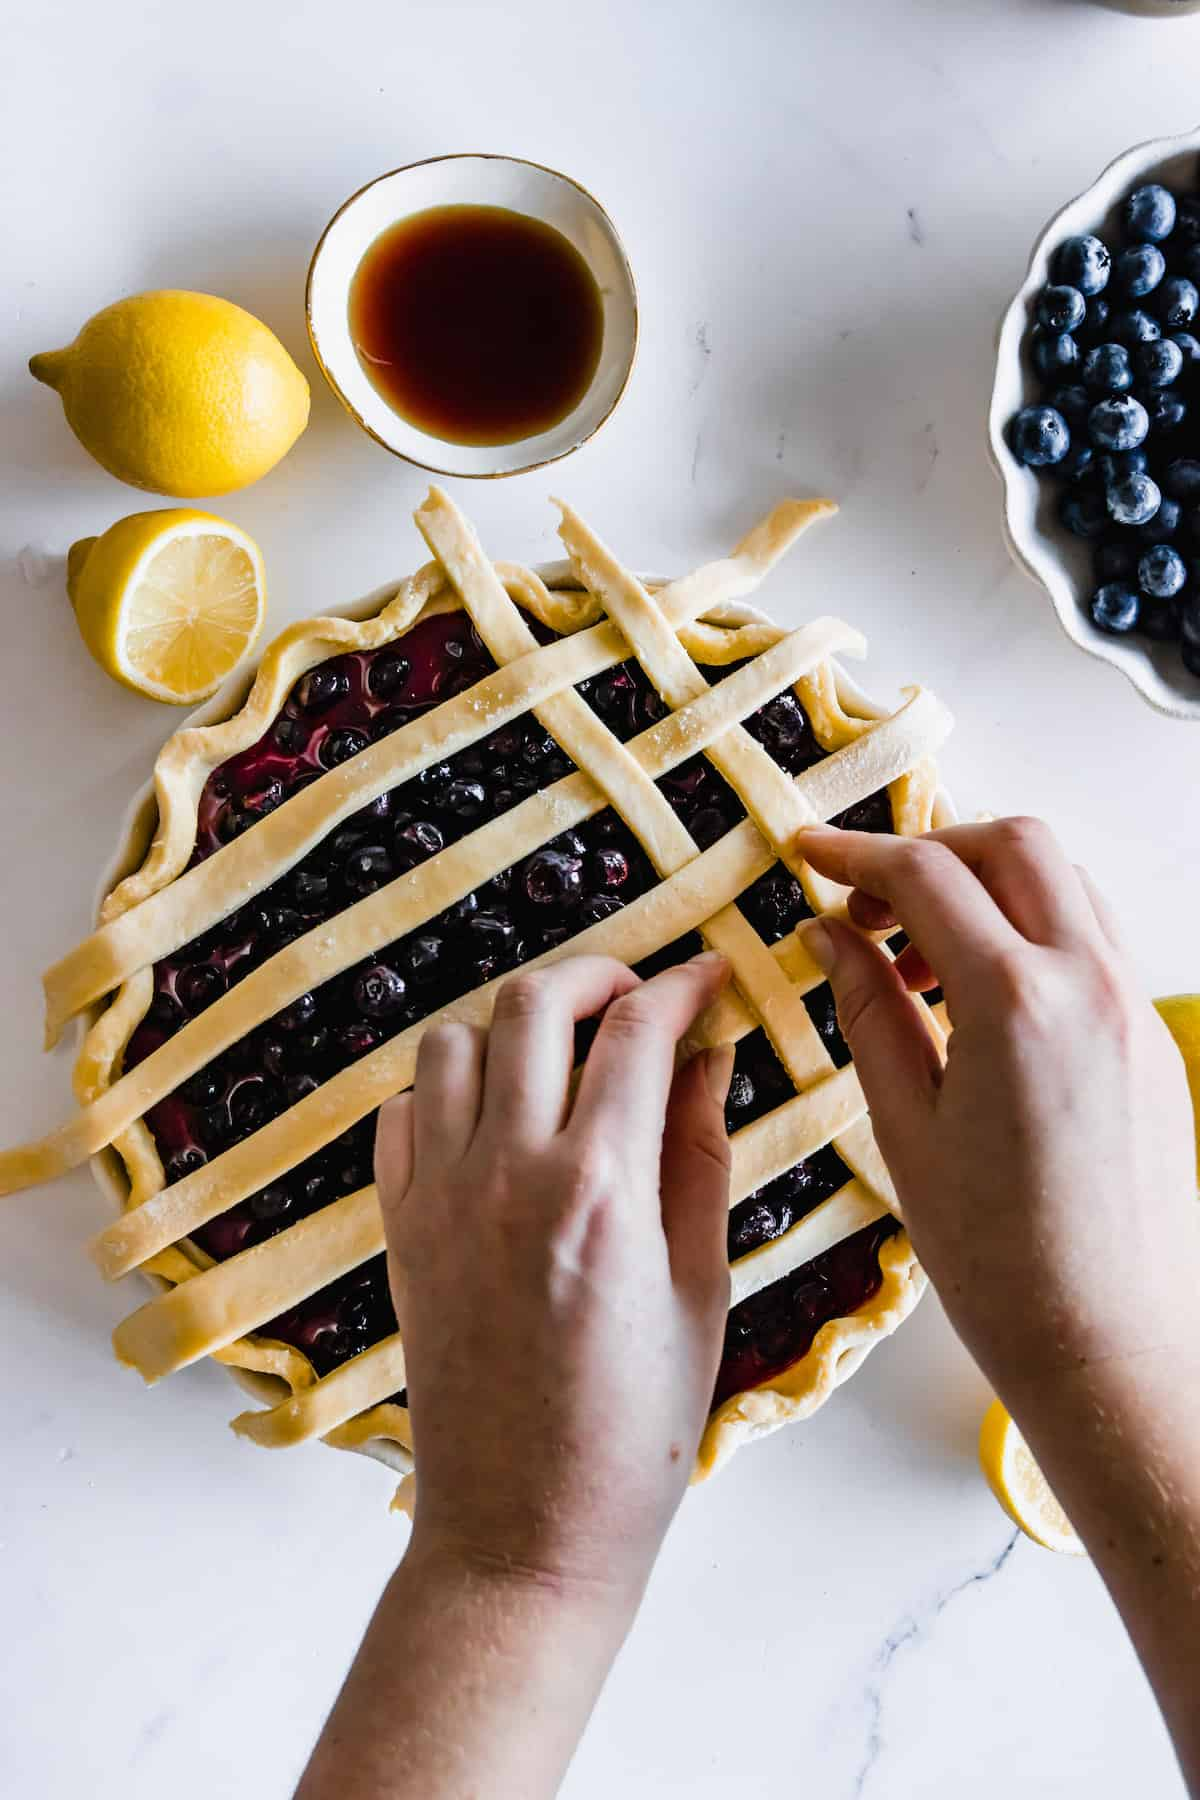 Two Hands Assembling the Lattice Top to a Blueberry Pie